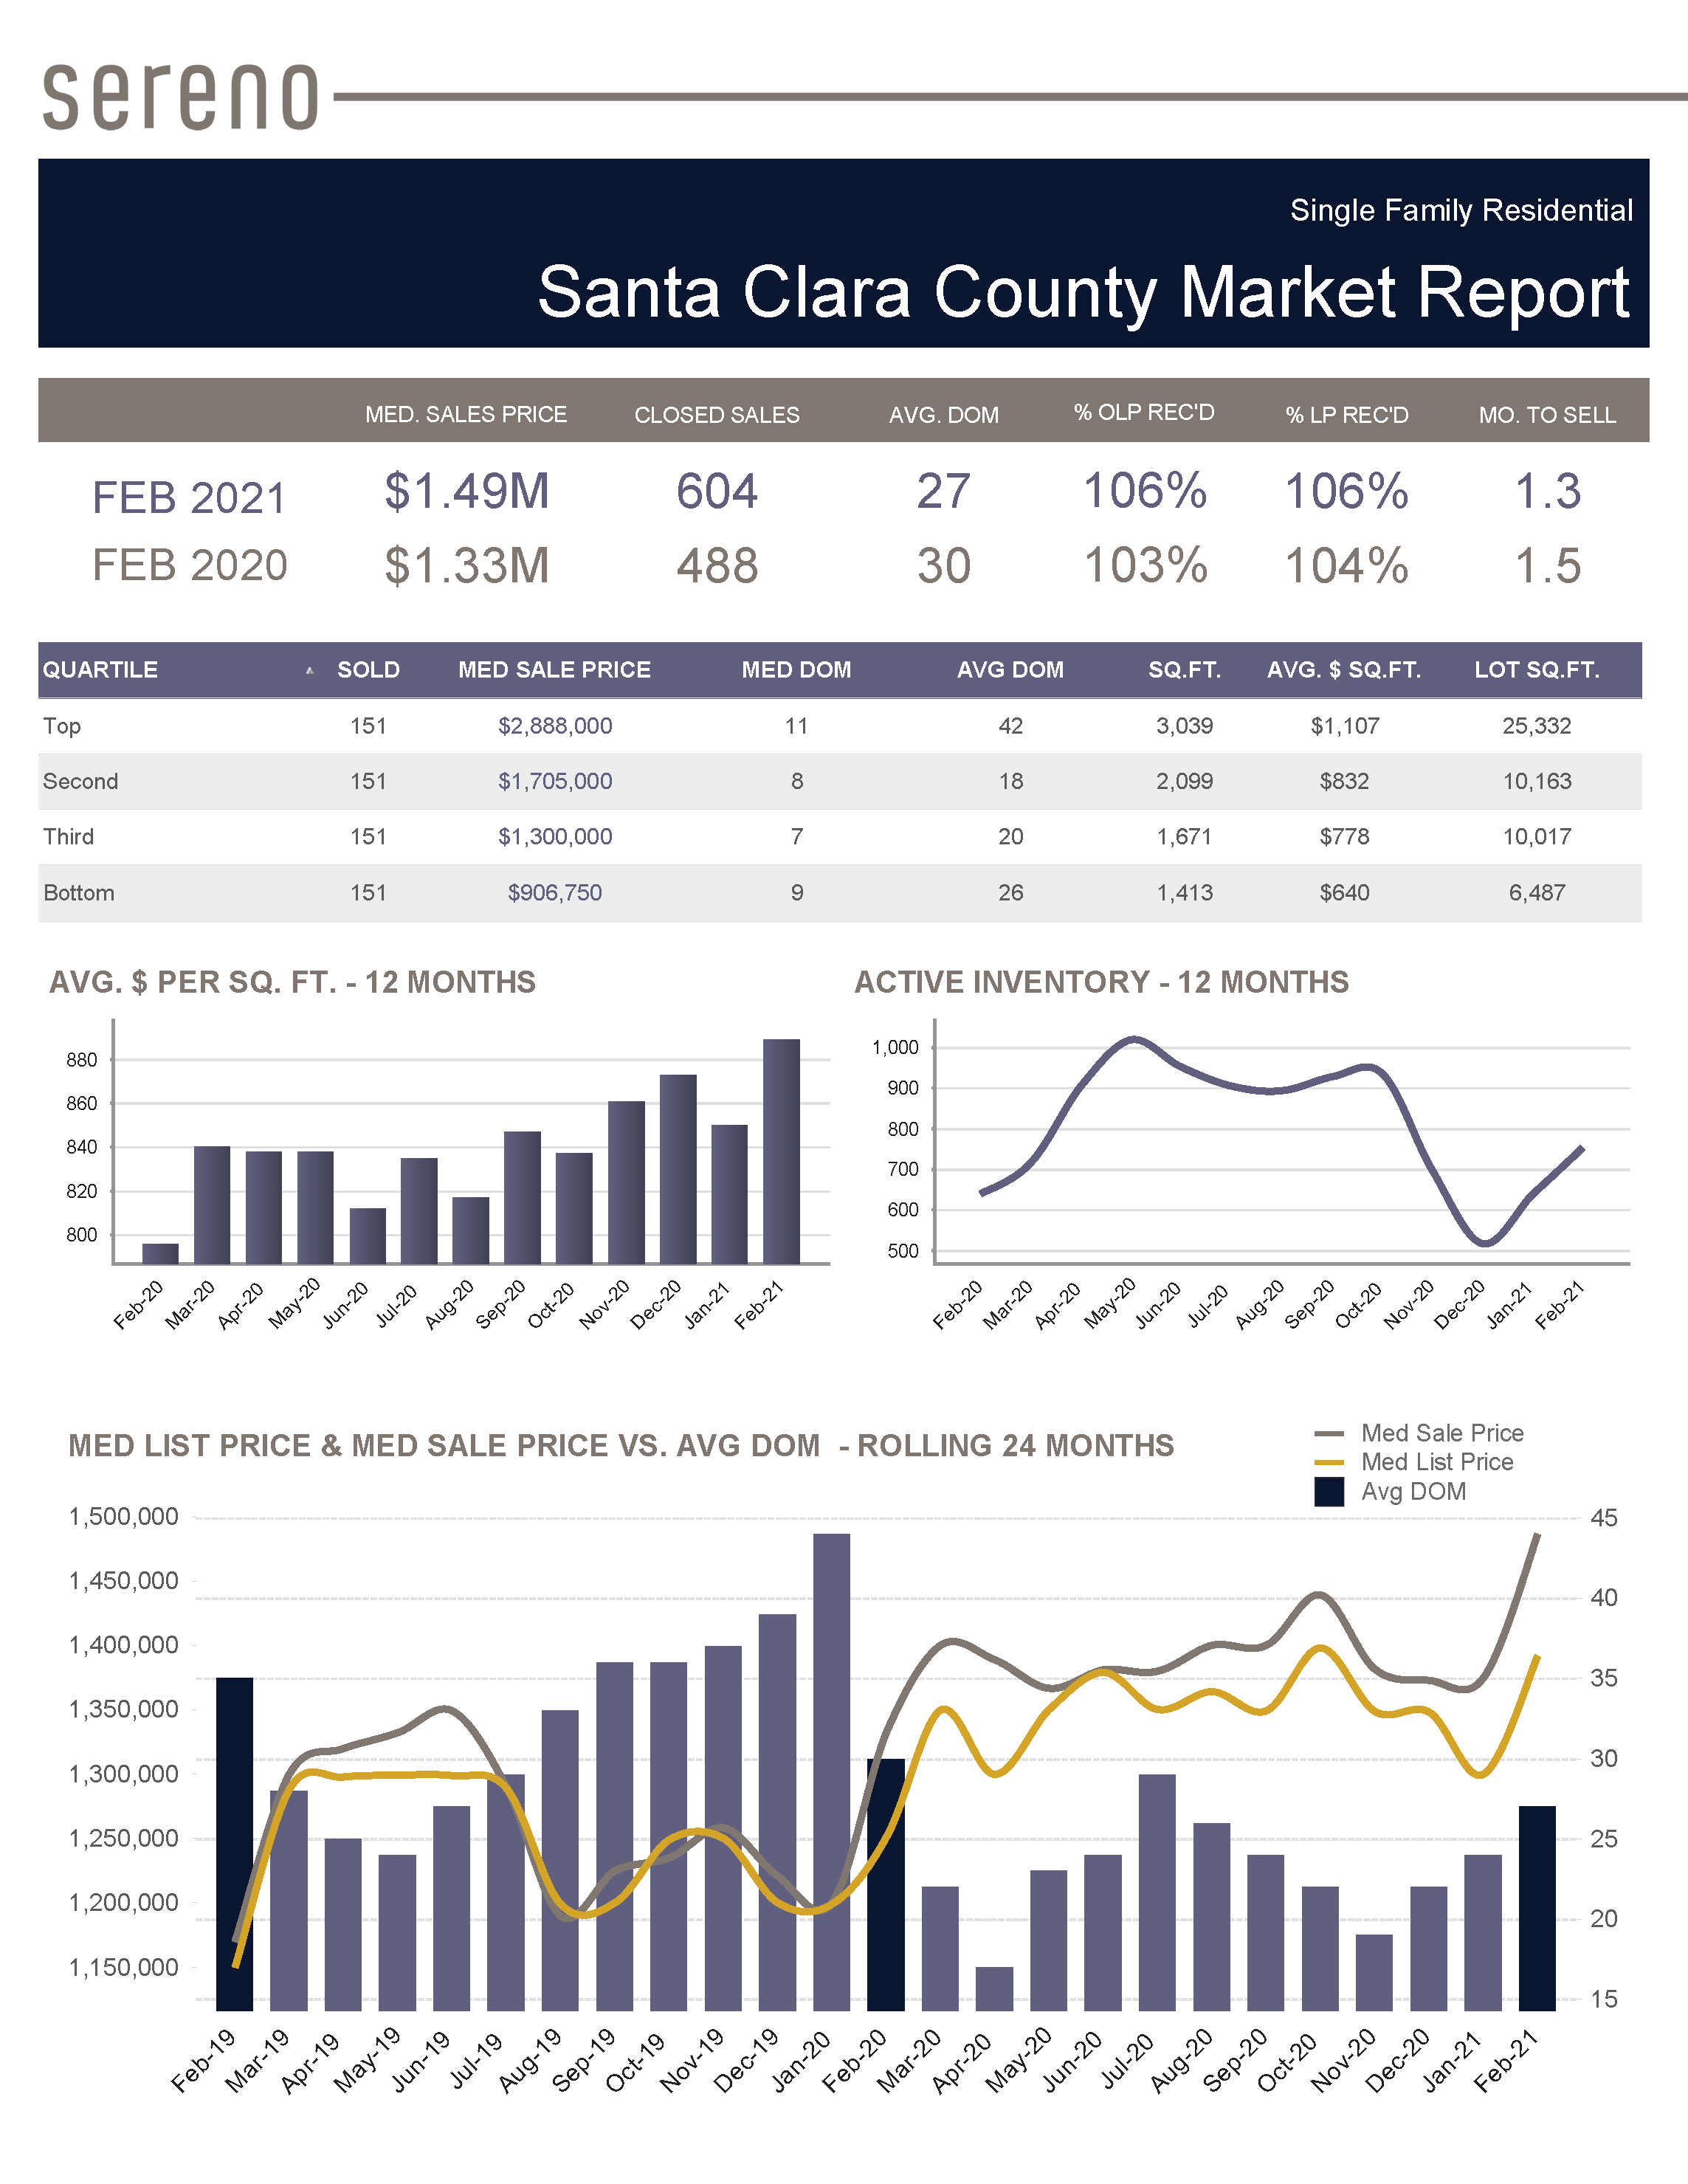 Feb 2021 – Single Family Residential Market Report - Santa Clara